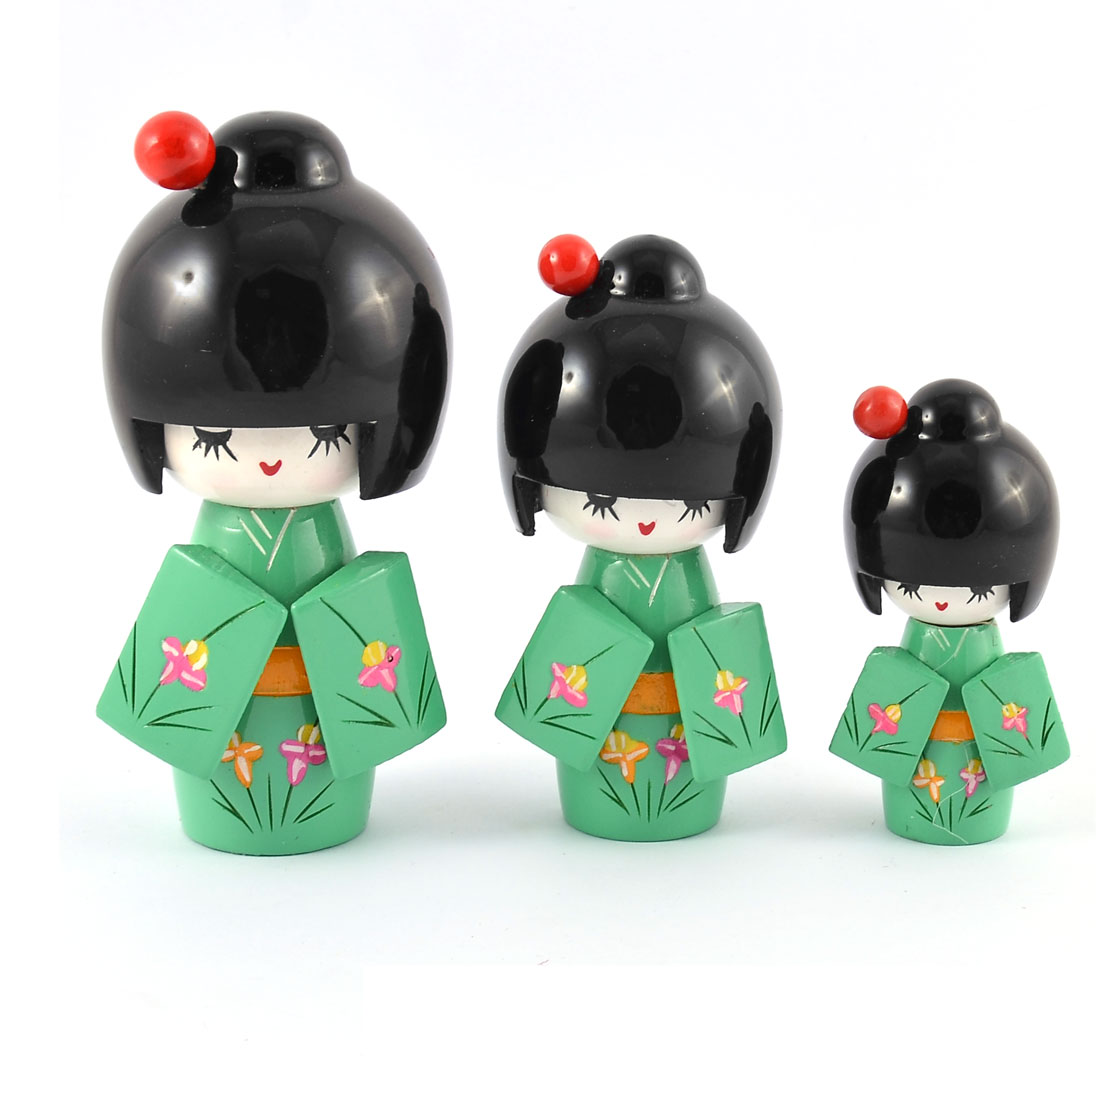 Home Wooden Japanese Doll Girl Desk Desktop Decoration Green 3 in 1